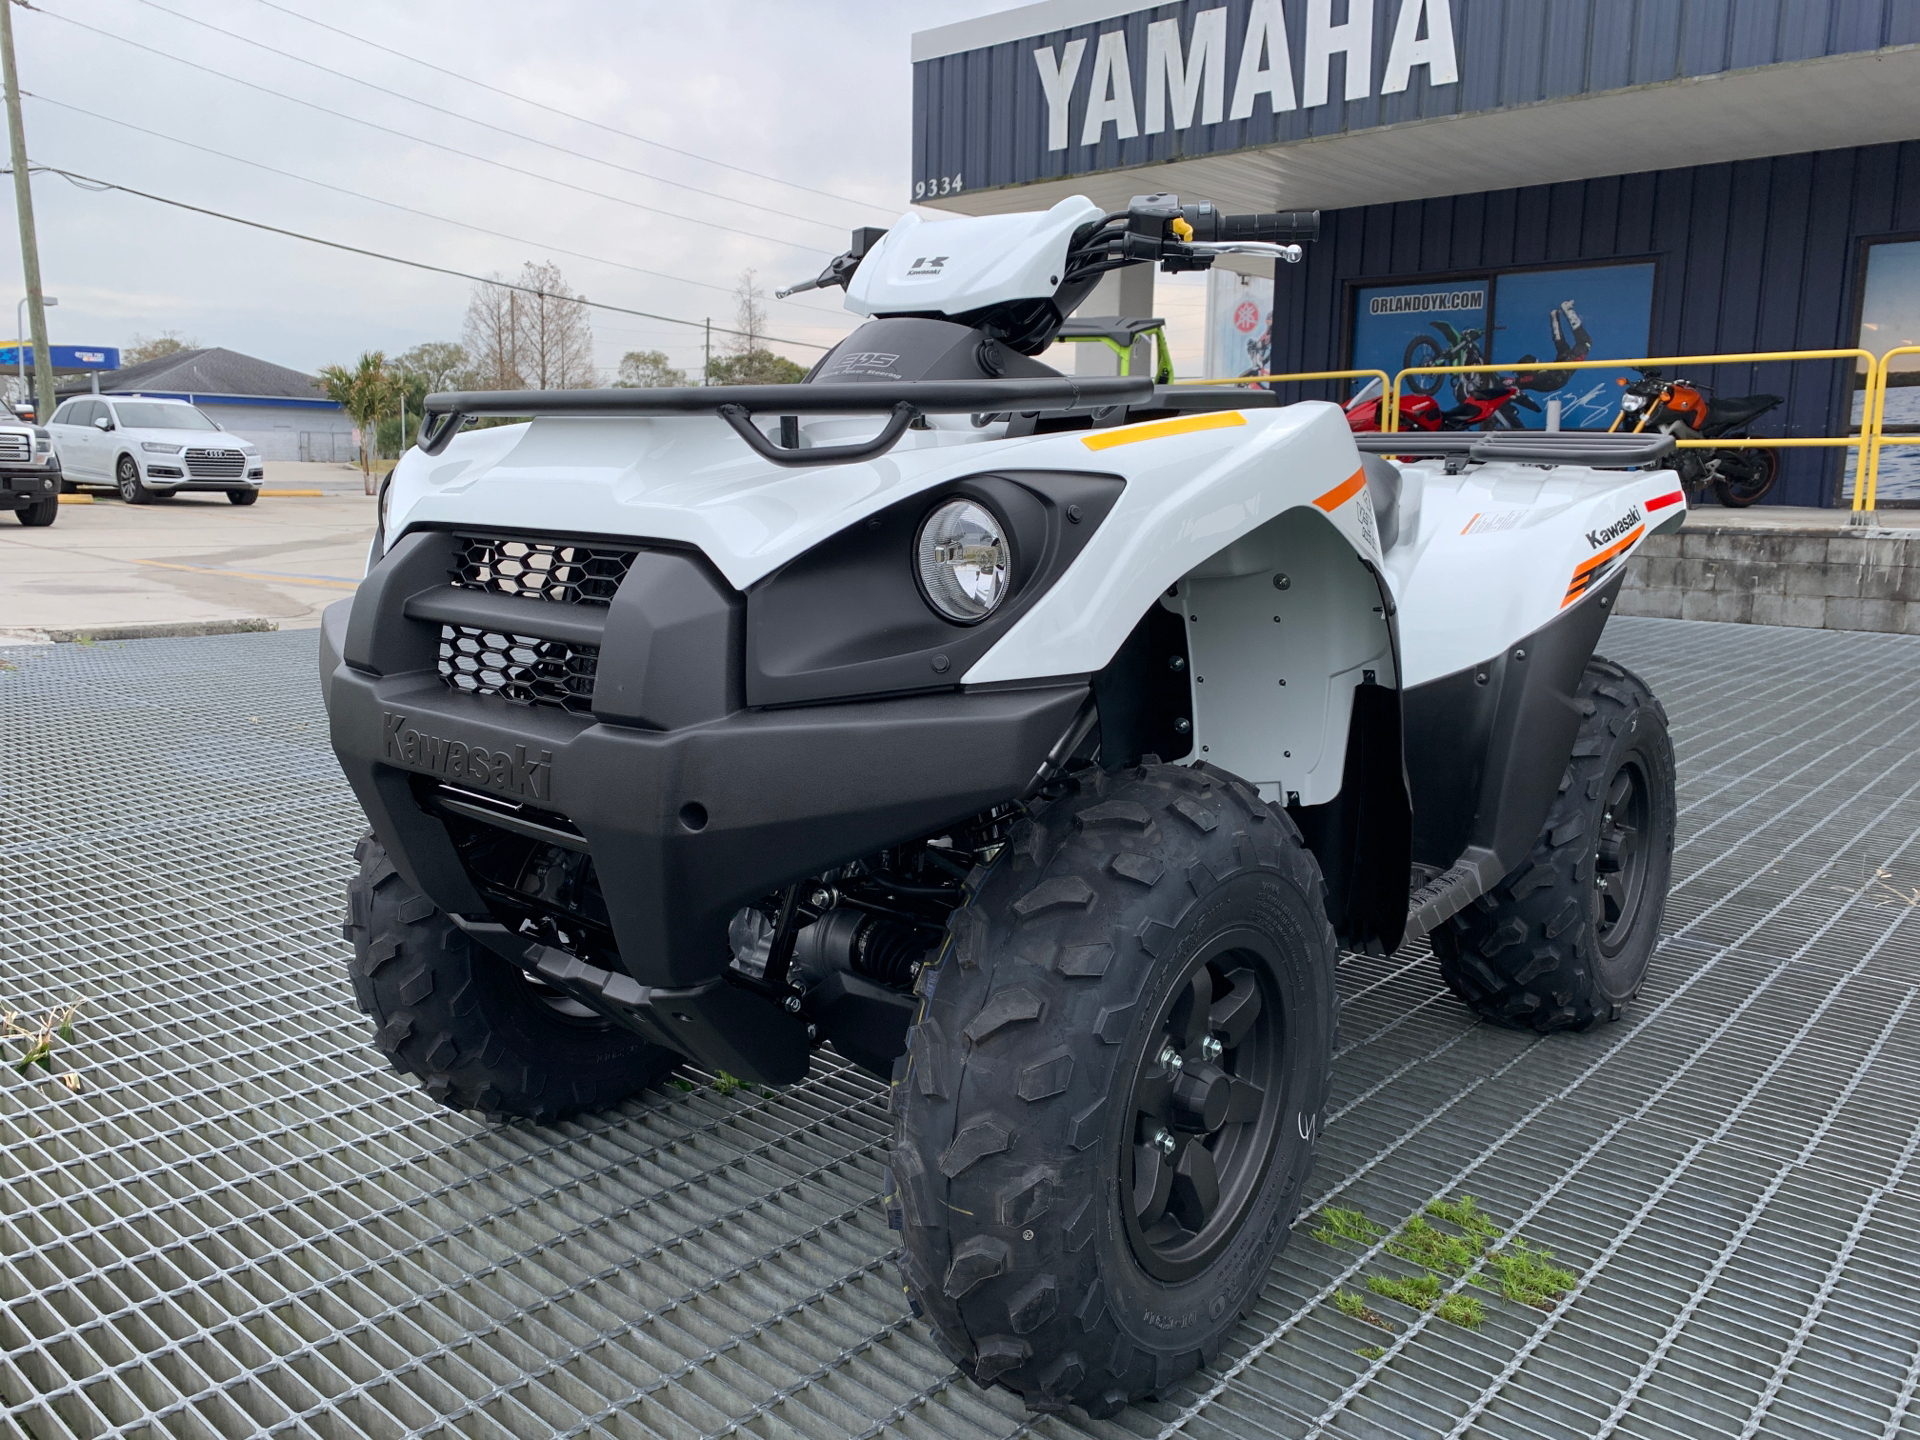 2021 Kawasaki Brute Force 750 4x4i EPS in Orlando, Florida - Photo 1